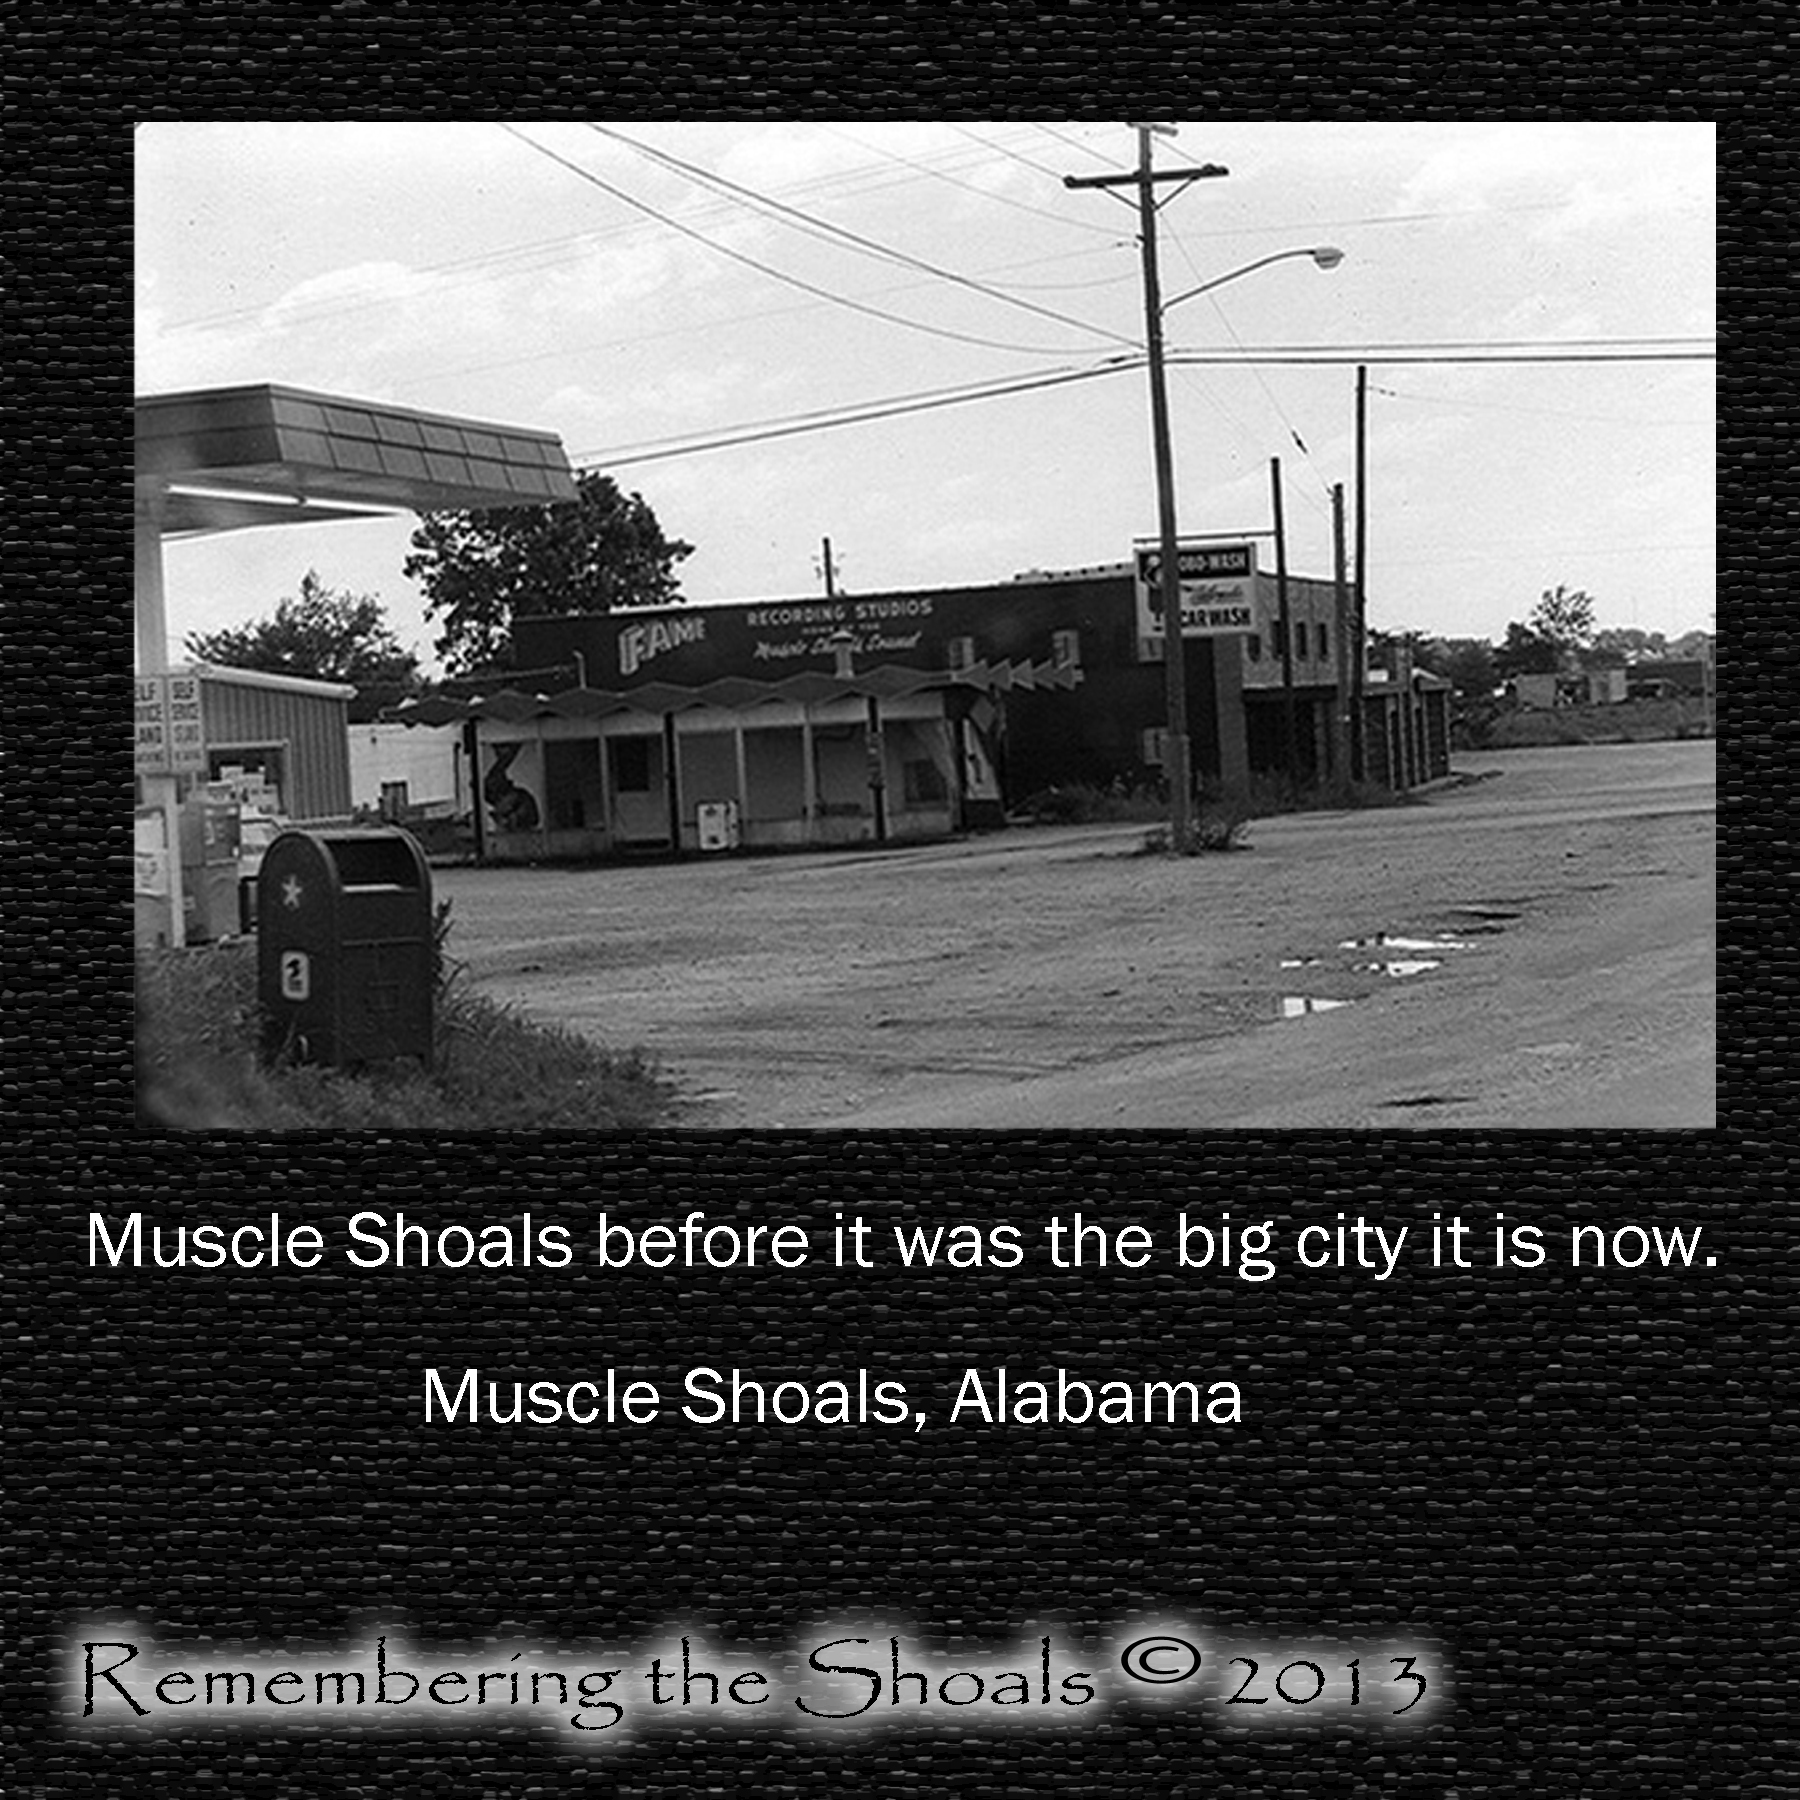 Muscle Shoals Car Wash